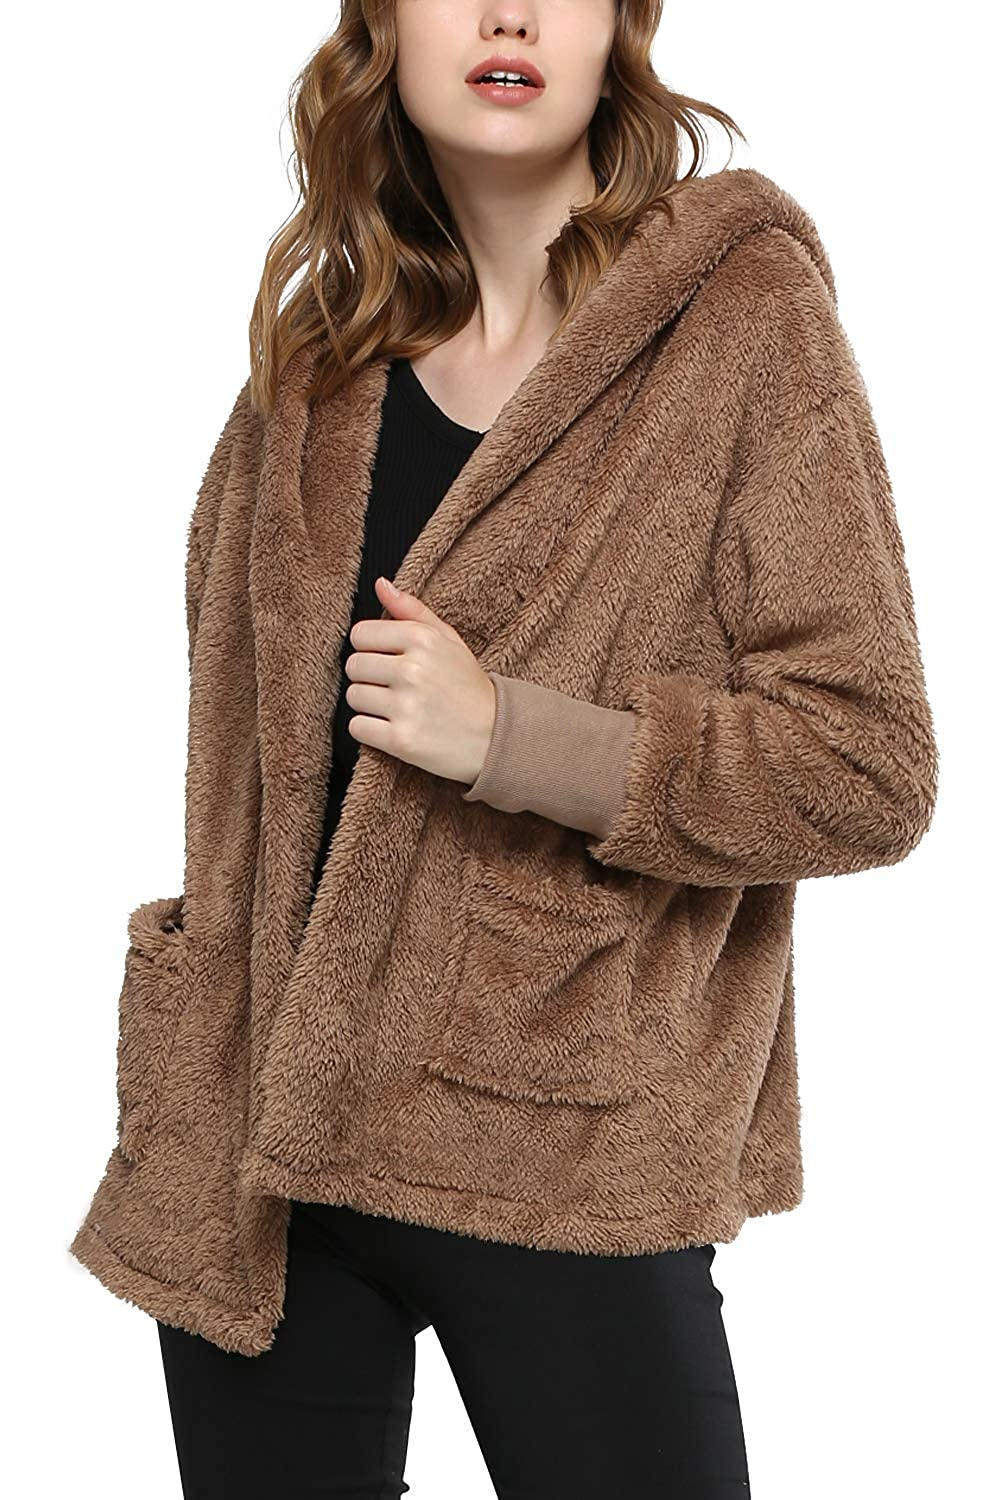 Kinikiss Women's Fuzzy Cardigan Hooded Open Front Jacket Coat Pocket, Spring, Autumn Winter